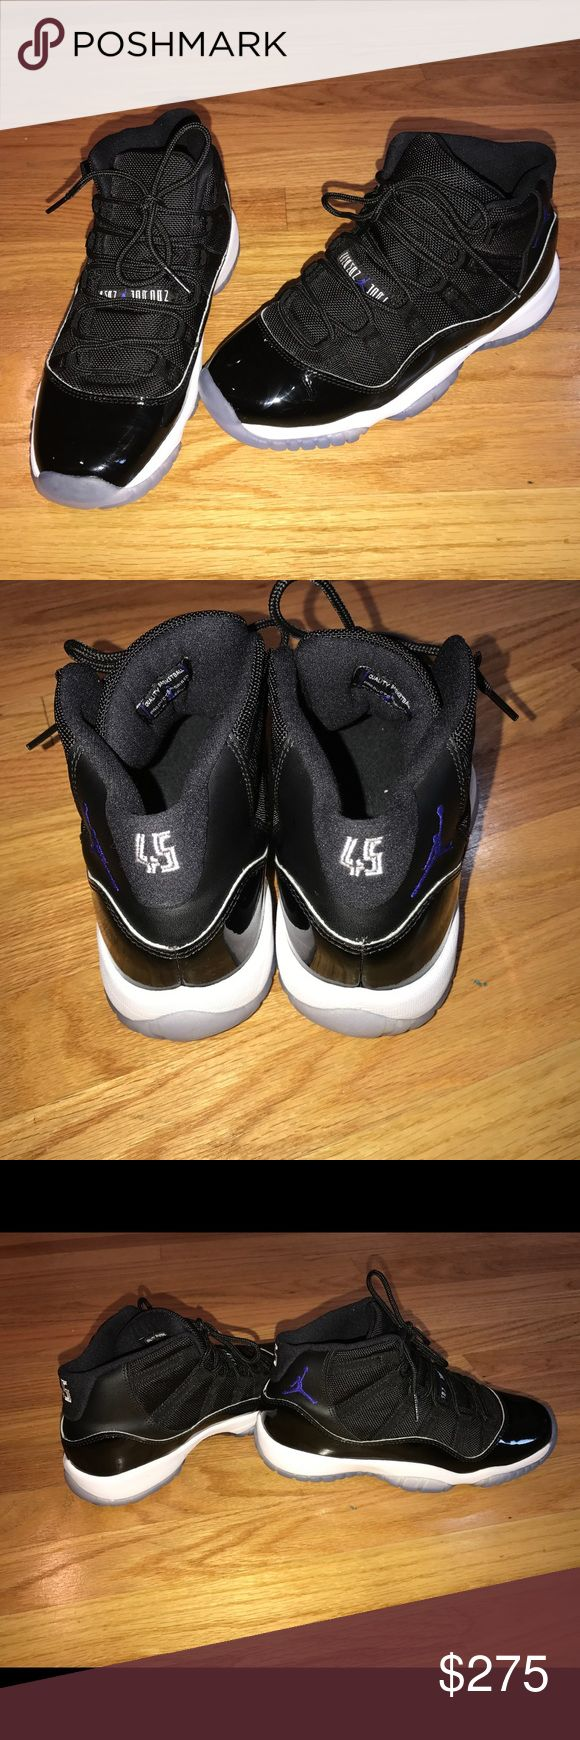 Jordan 11s- Space Jam 2016 Size 5.5 Boys DEAD STOCK!!!! Worn only TWICE !!!! Brand new. Also have a matching size 6c kids. I Have A Pair Of Jordan 11 Space Jams 2016 Size 5.5  1000% Real From Foot Locker.. I Don't Sell Fakes Or Replicas  No Returns, They Are Real, and You Should Know What Size You Wear  Will Only Ship Within The United States Unless Messaged First And Can Agree On A Shipping Cost  Thanks For Looking Air Jordan Shoes Sneakers